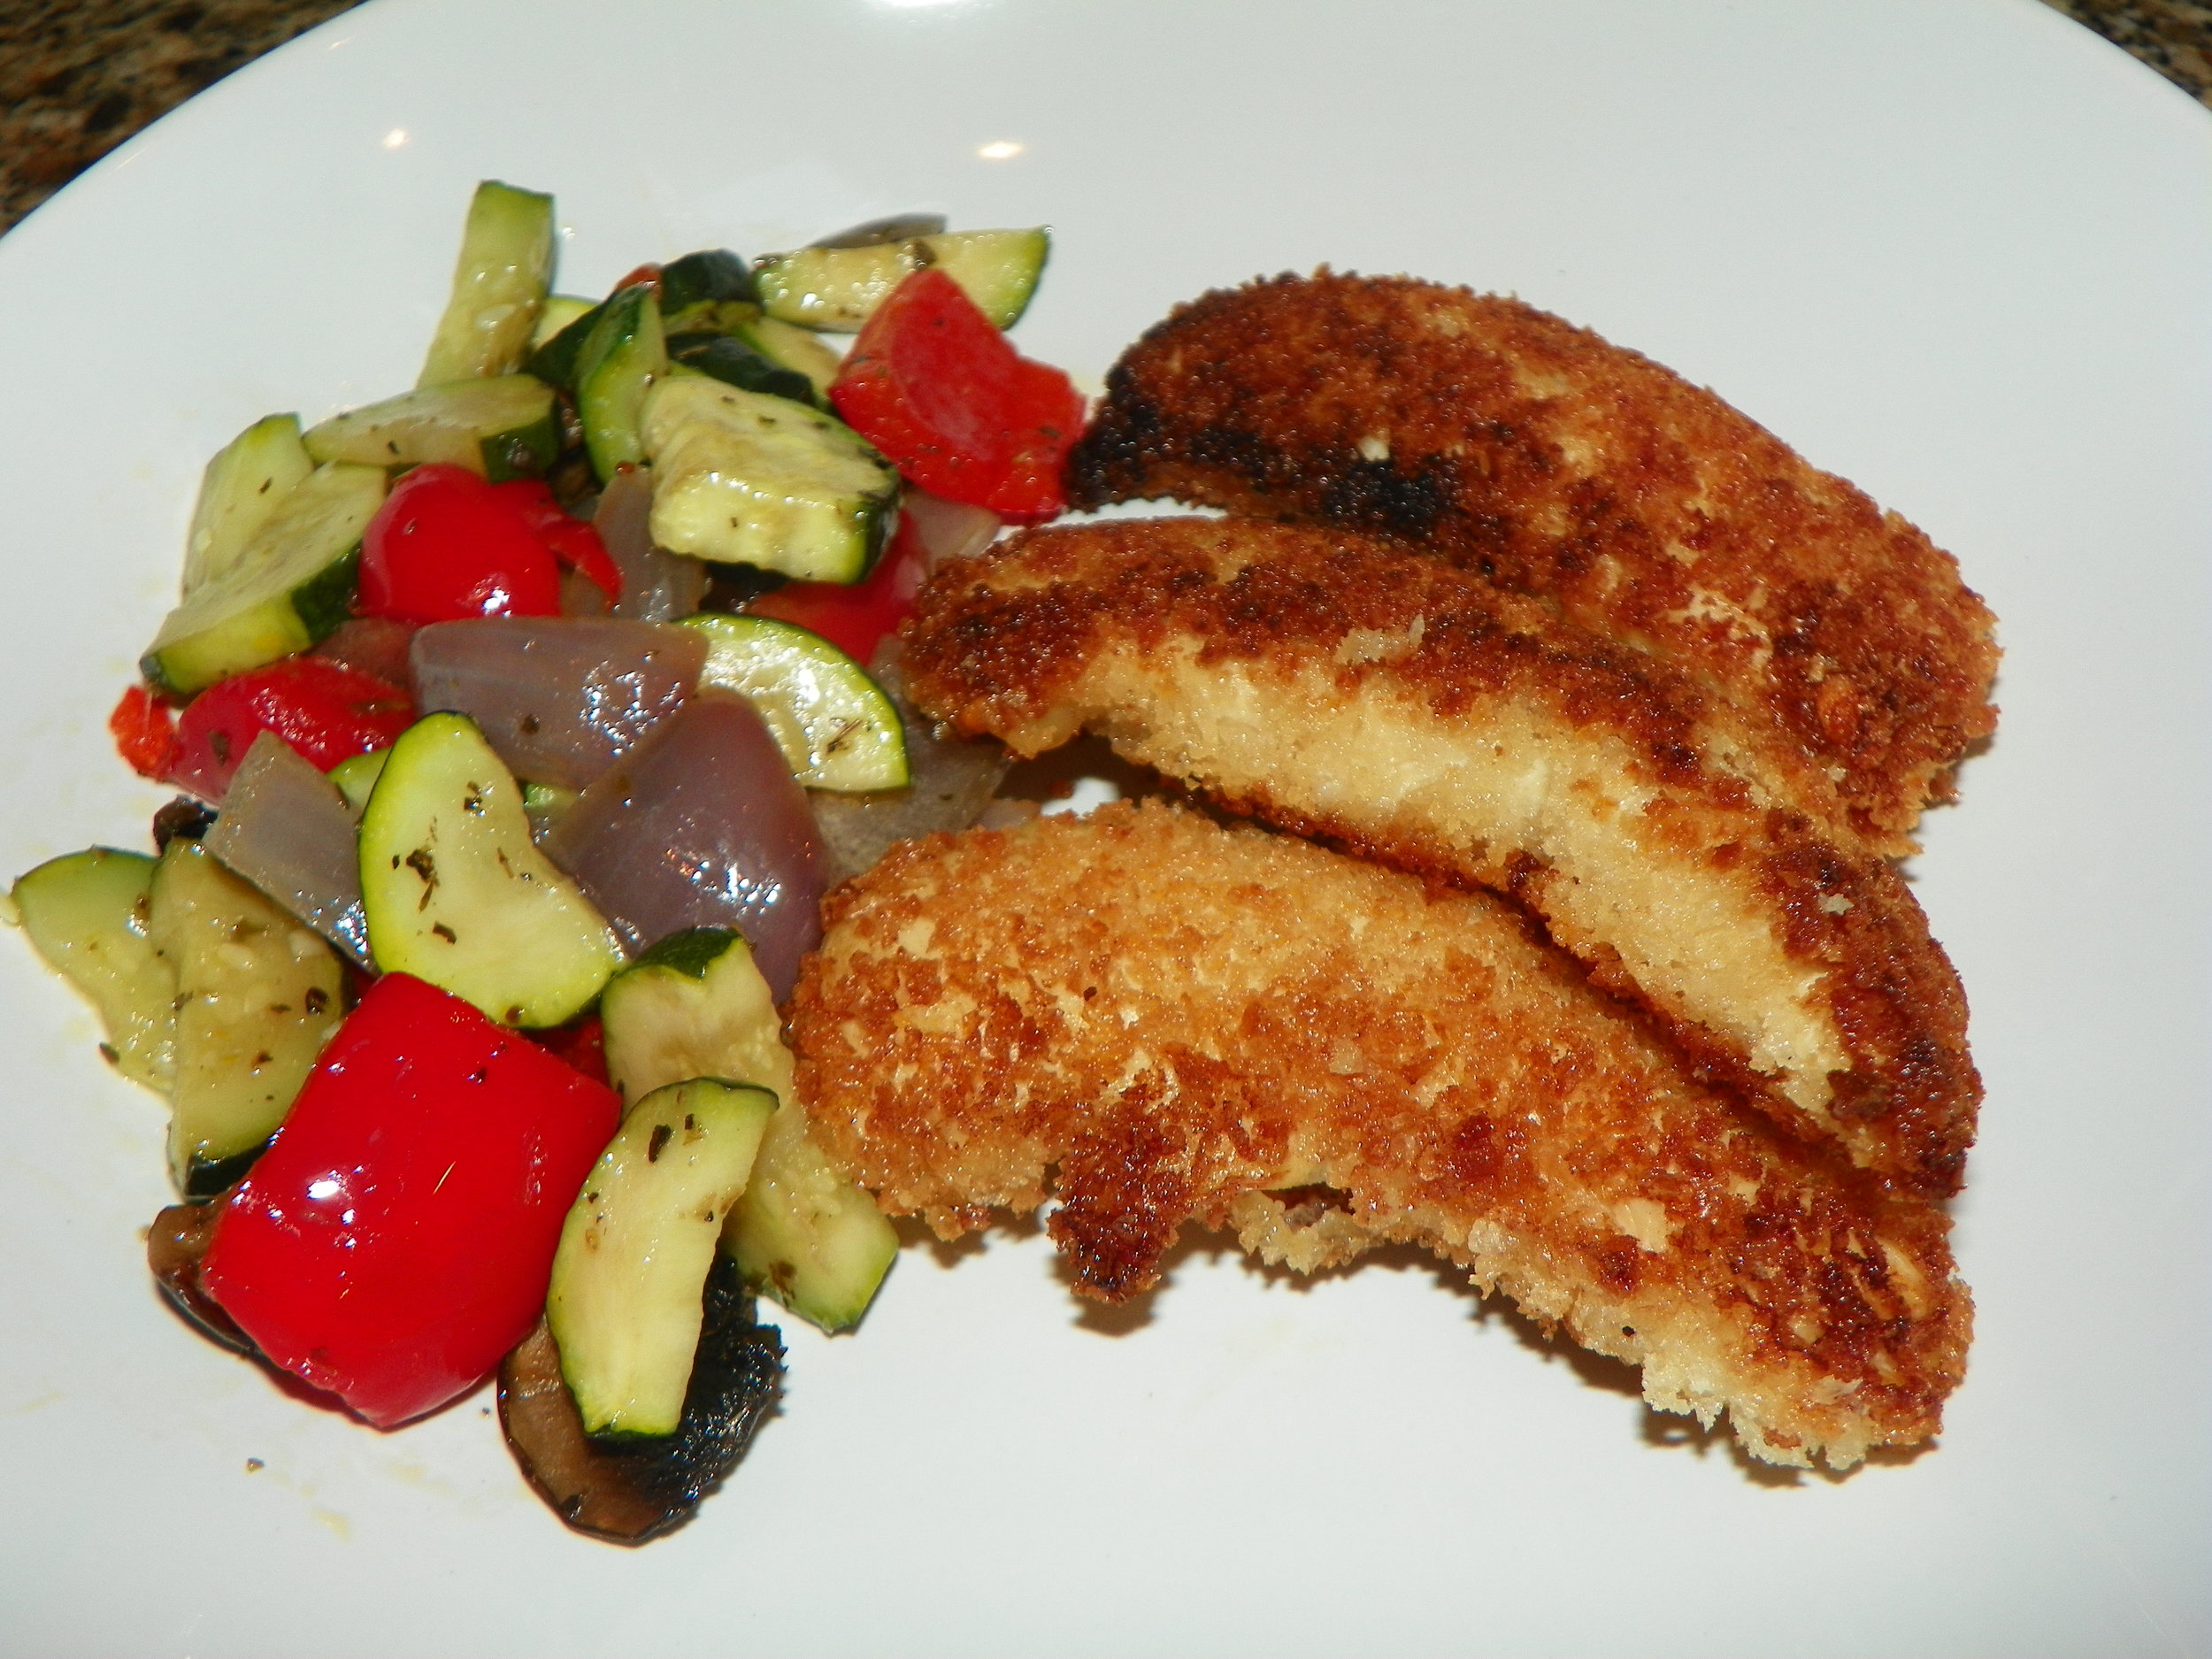 Panko Chicken pic 4.JPG